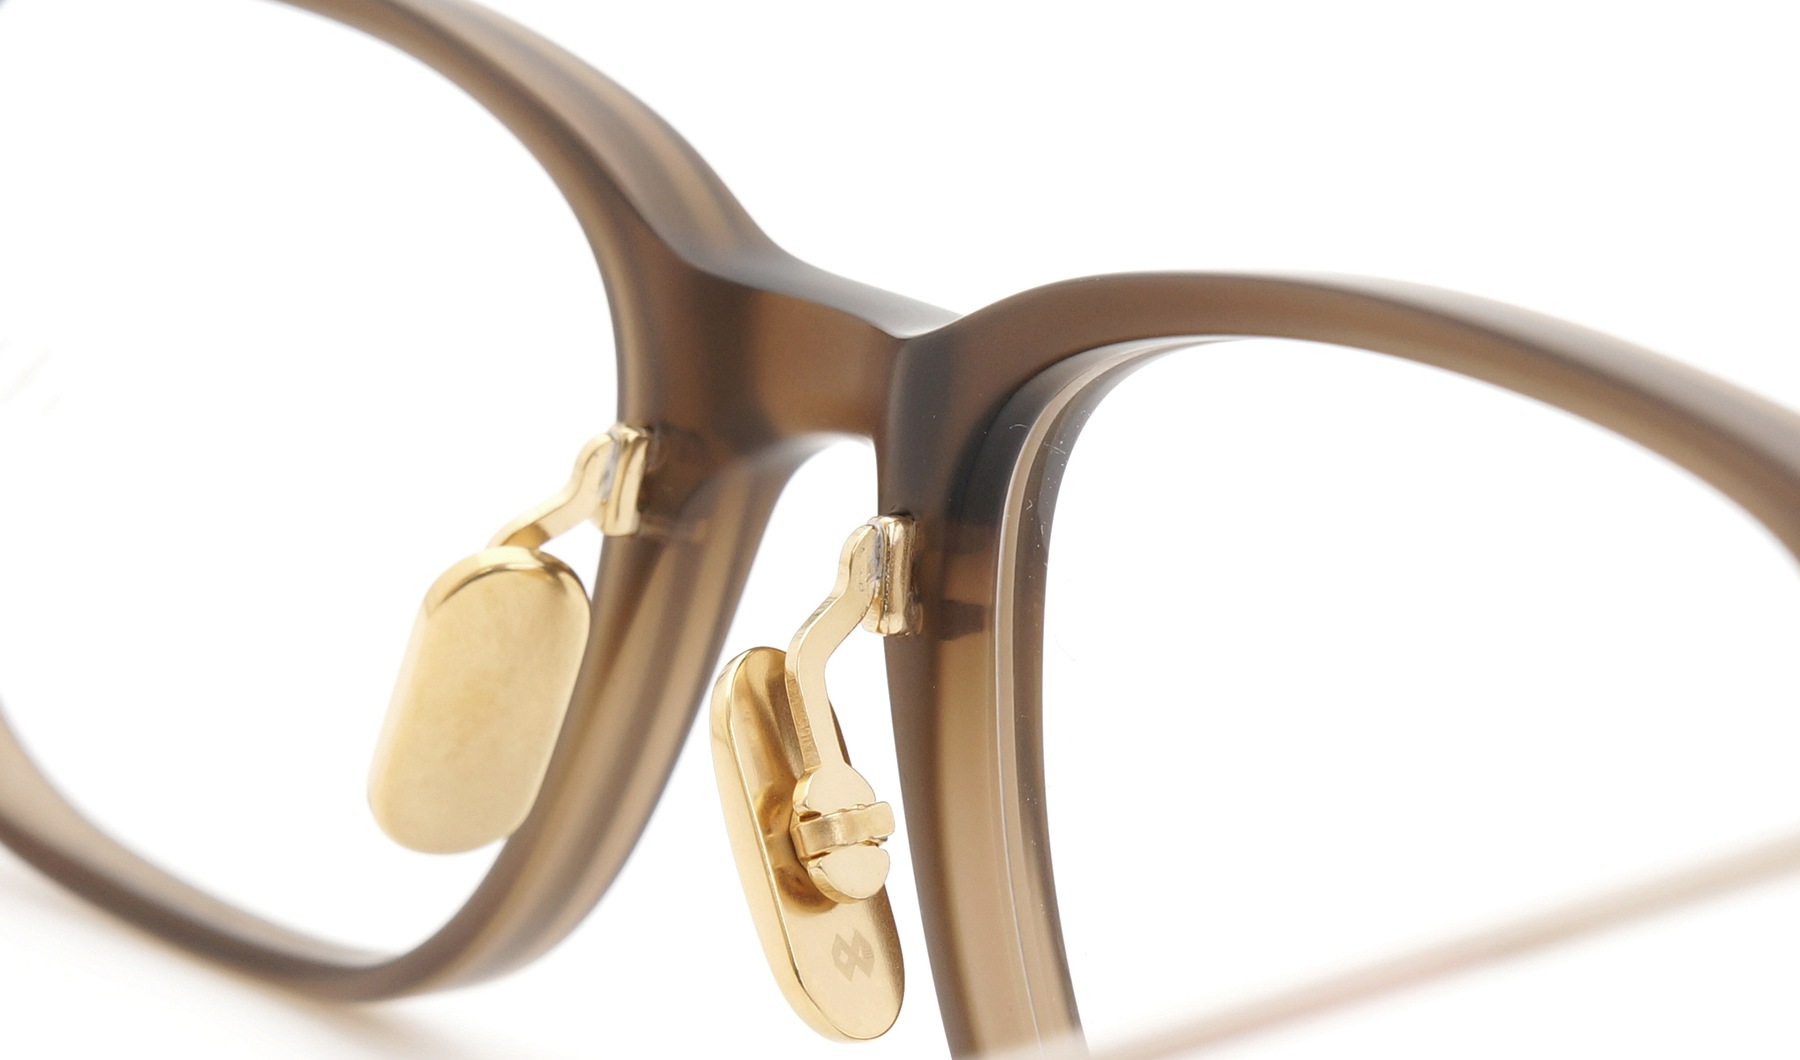 OG × OLIVER GOLDSMITH Re:MUST リ:マスト 8